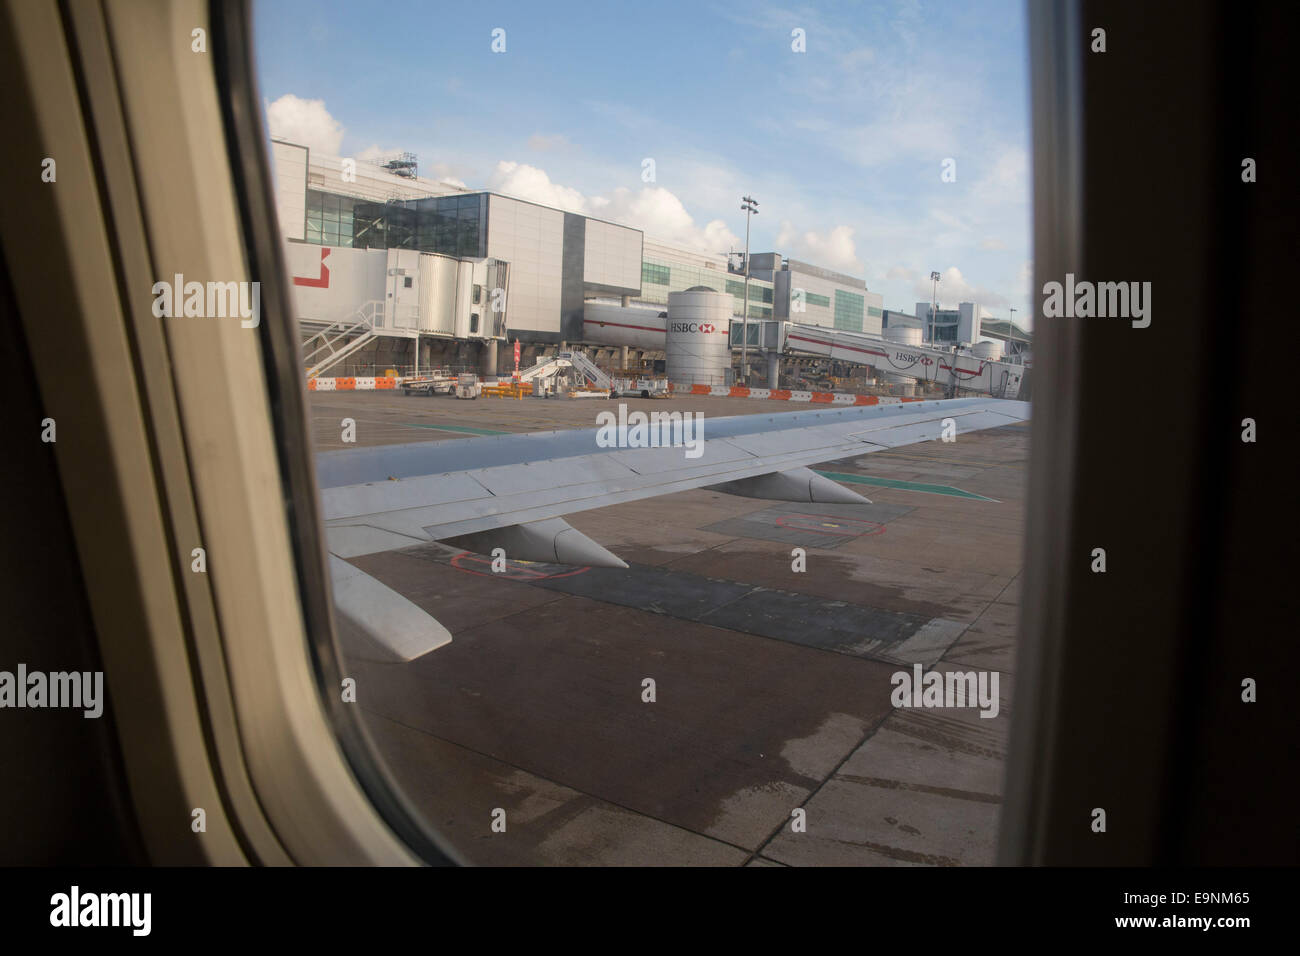 View from an aeroplane window of the plane's wing, airport buildings and tarmac. London Gatwick Airport. - Stock Image